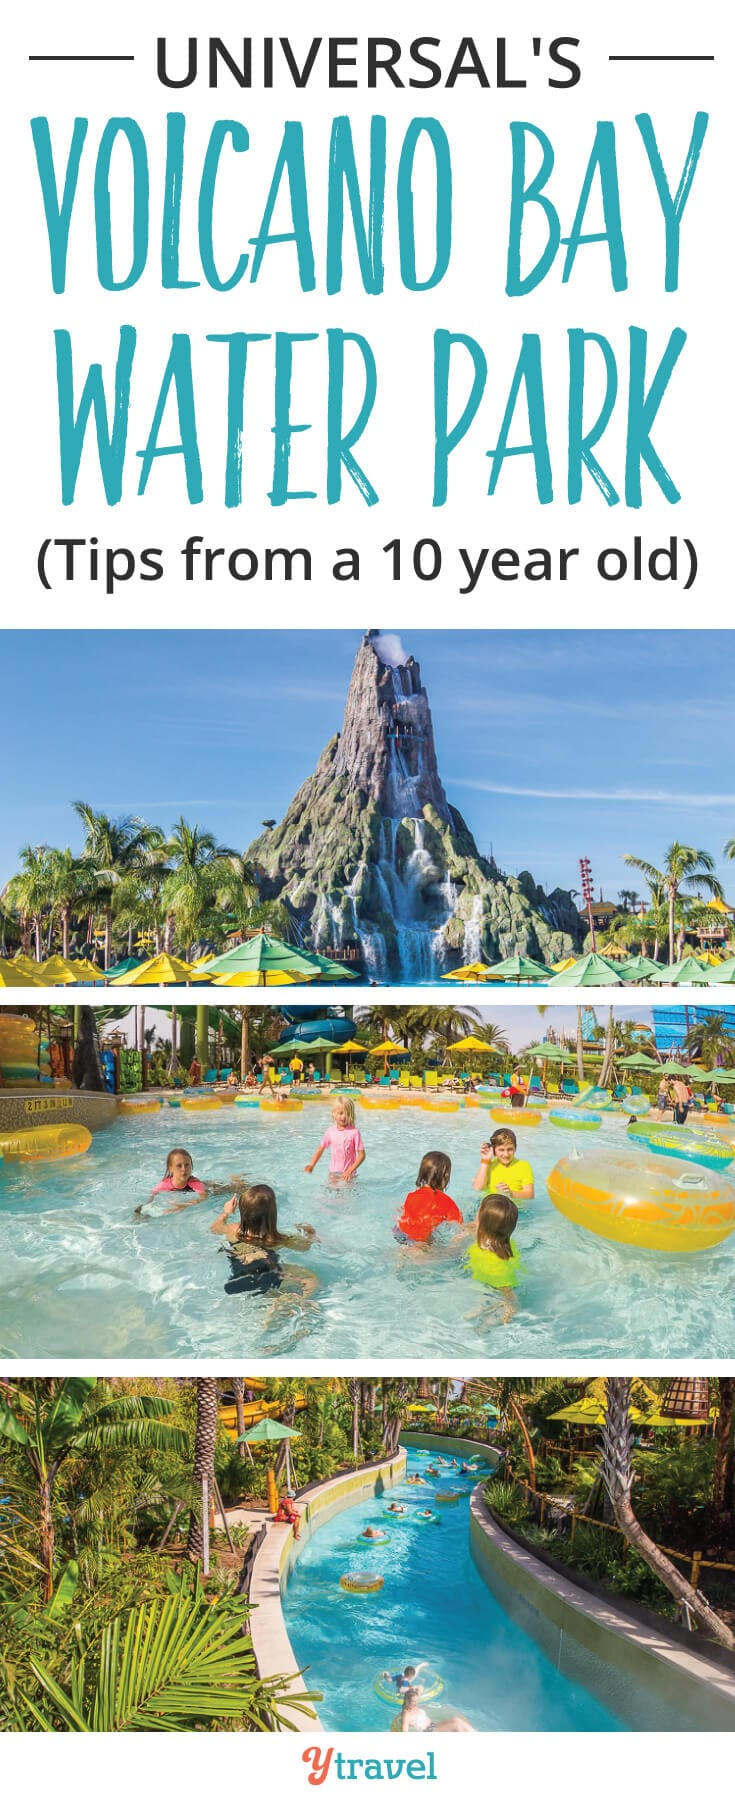 Volcano Bay Orlando. If you are planning a trip to Universal Orlando Resort, check out these tips for Universal's newest theme park, Volcano Bay in Orlando, Florida